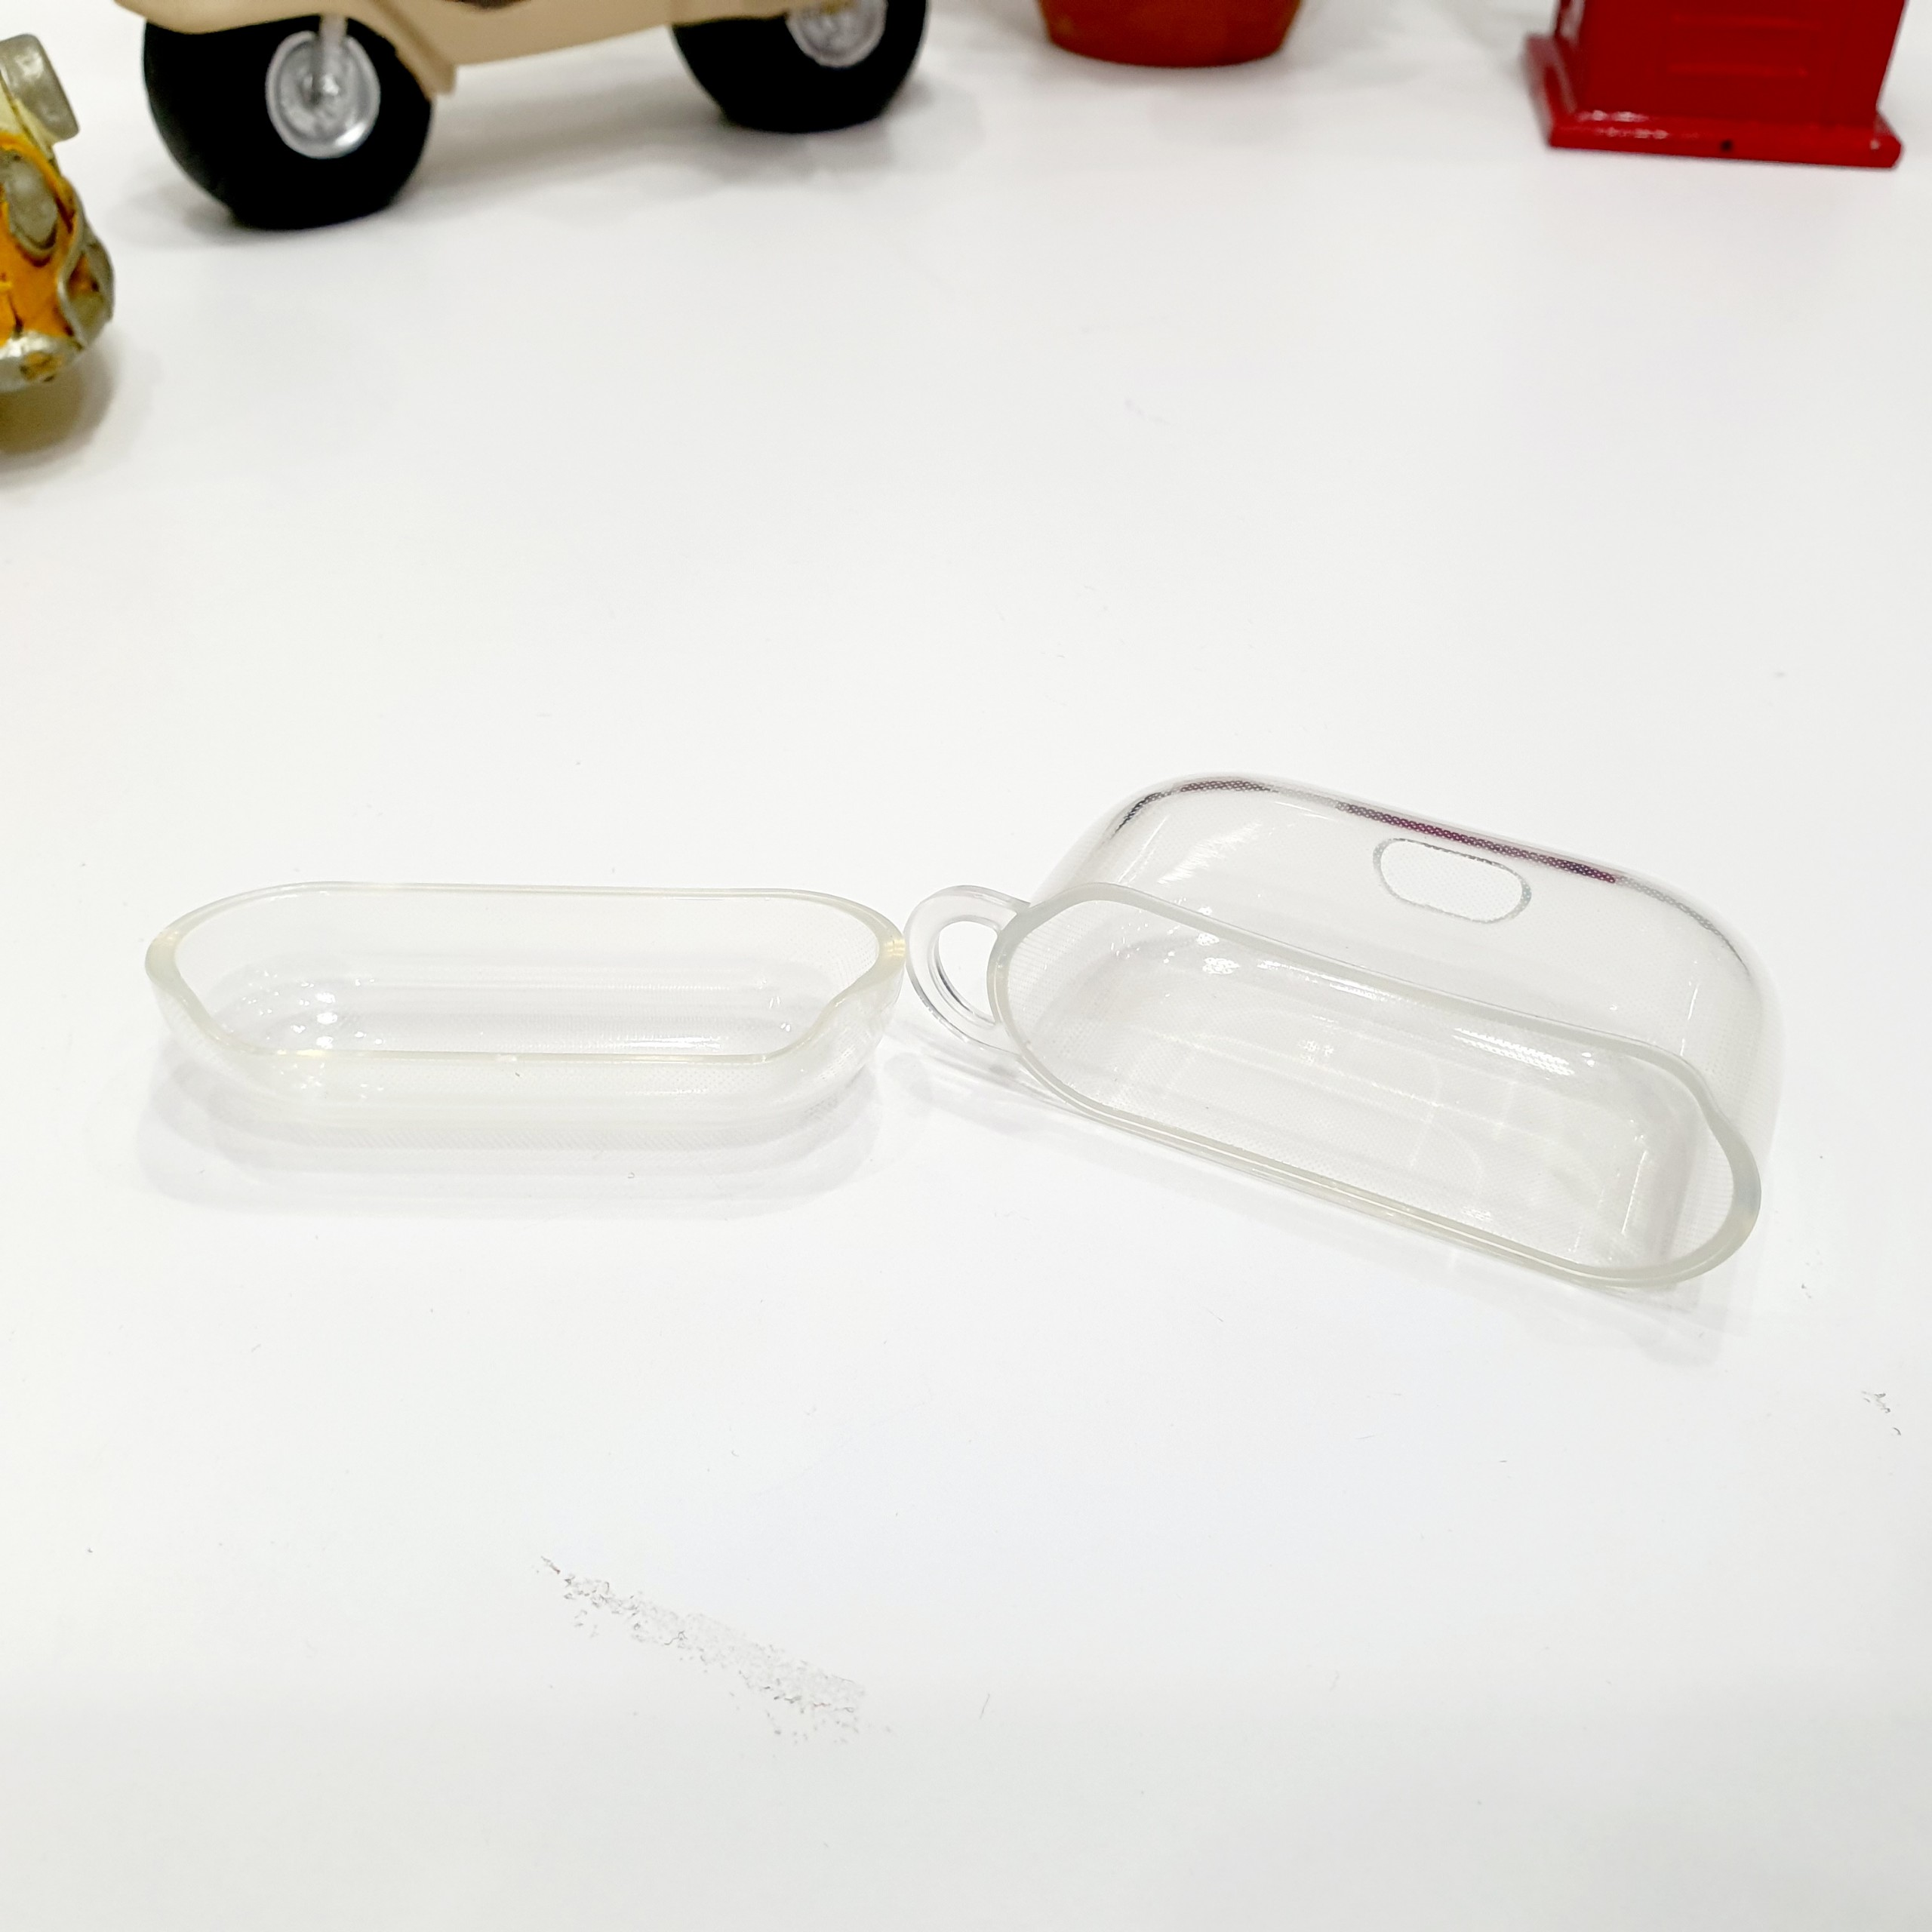 Case Ốp Silicon Bảo Vệ Cho Apple AirPods Pro Trong Suốt